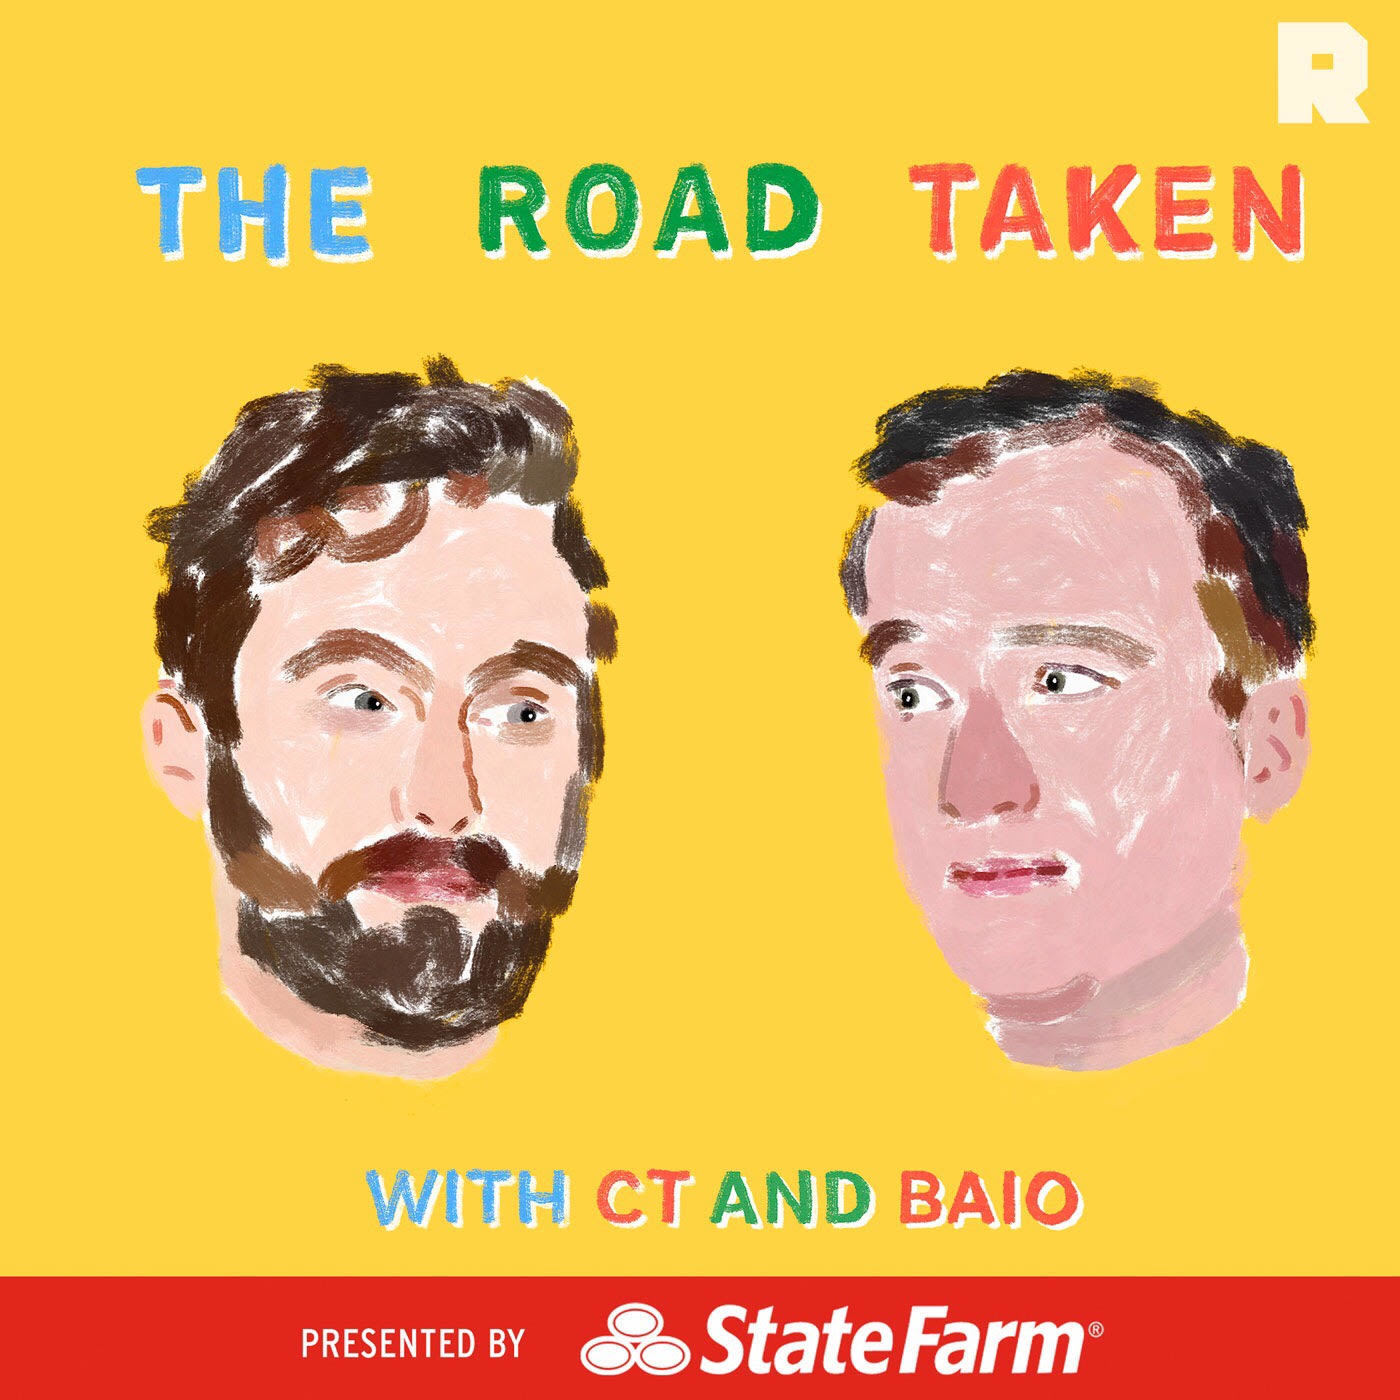 Chris Tomson and Chris Baio of Vampire Weekend | The Road Taken With CT and Baio